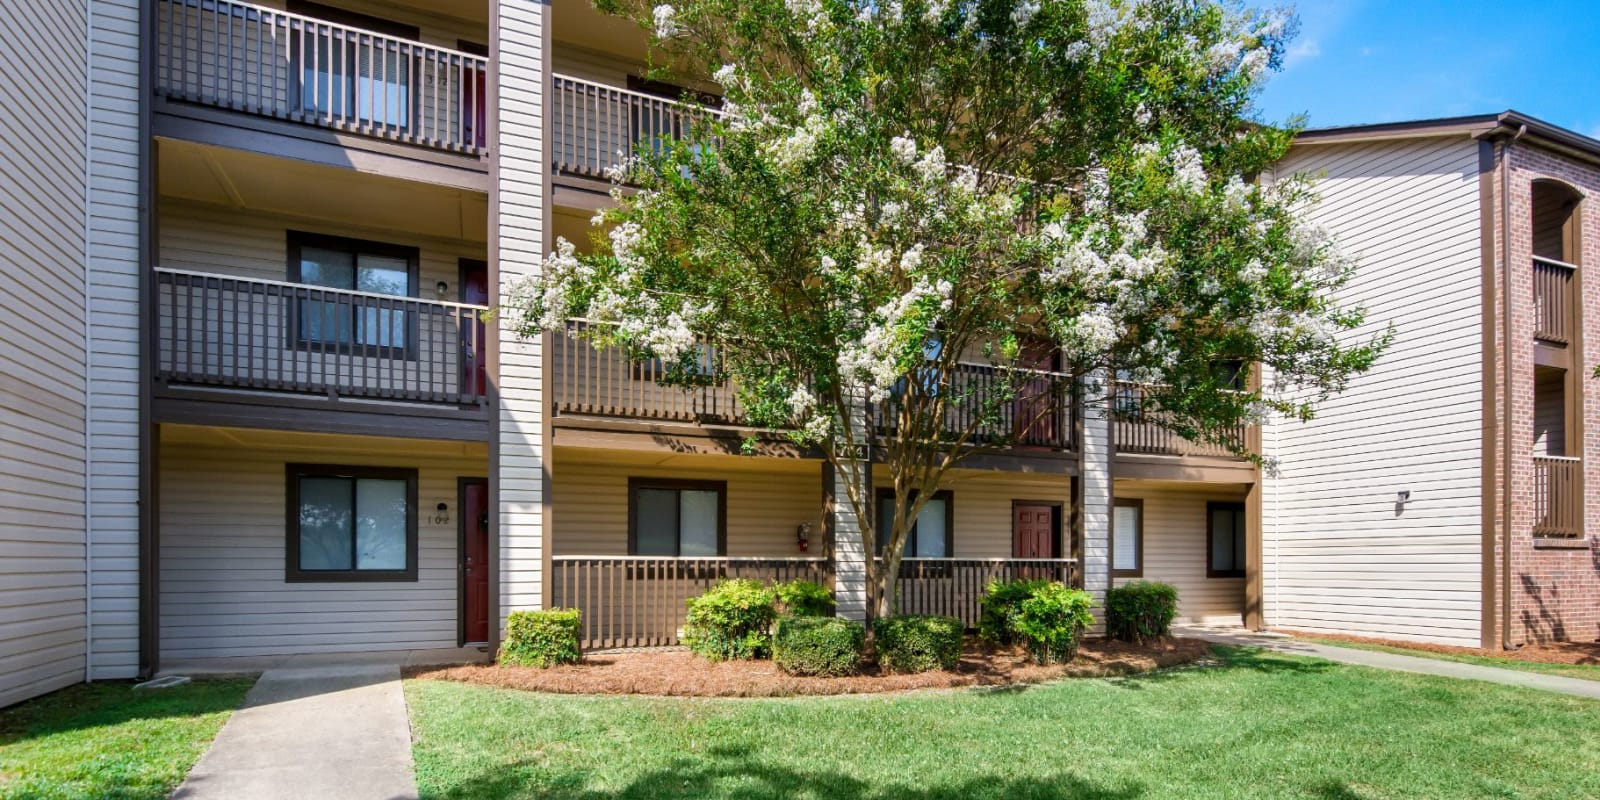 Large, beautiful deciduous trees surround Gable Oaks Apartment Homes in Rock Hill, South Carolina